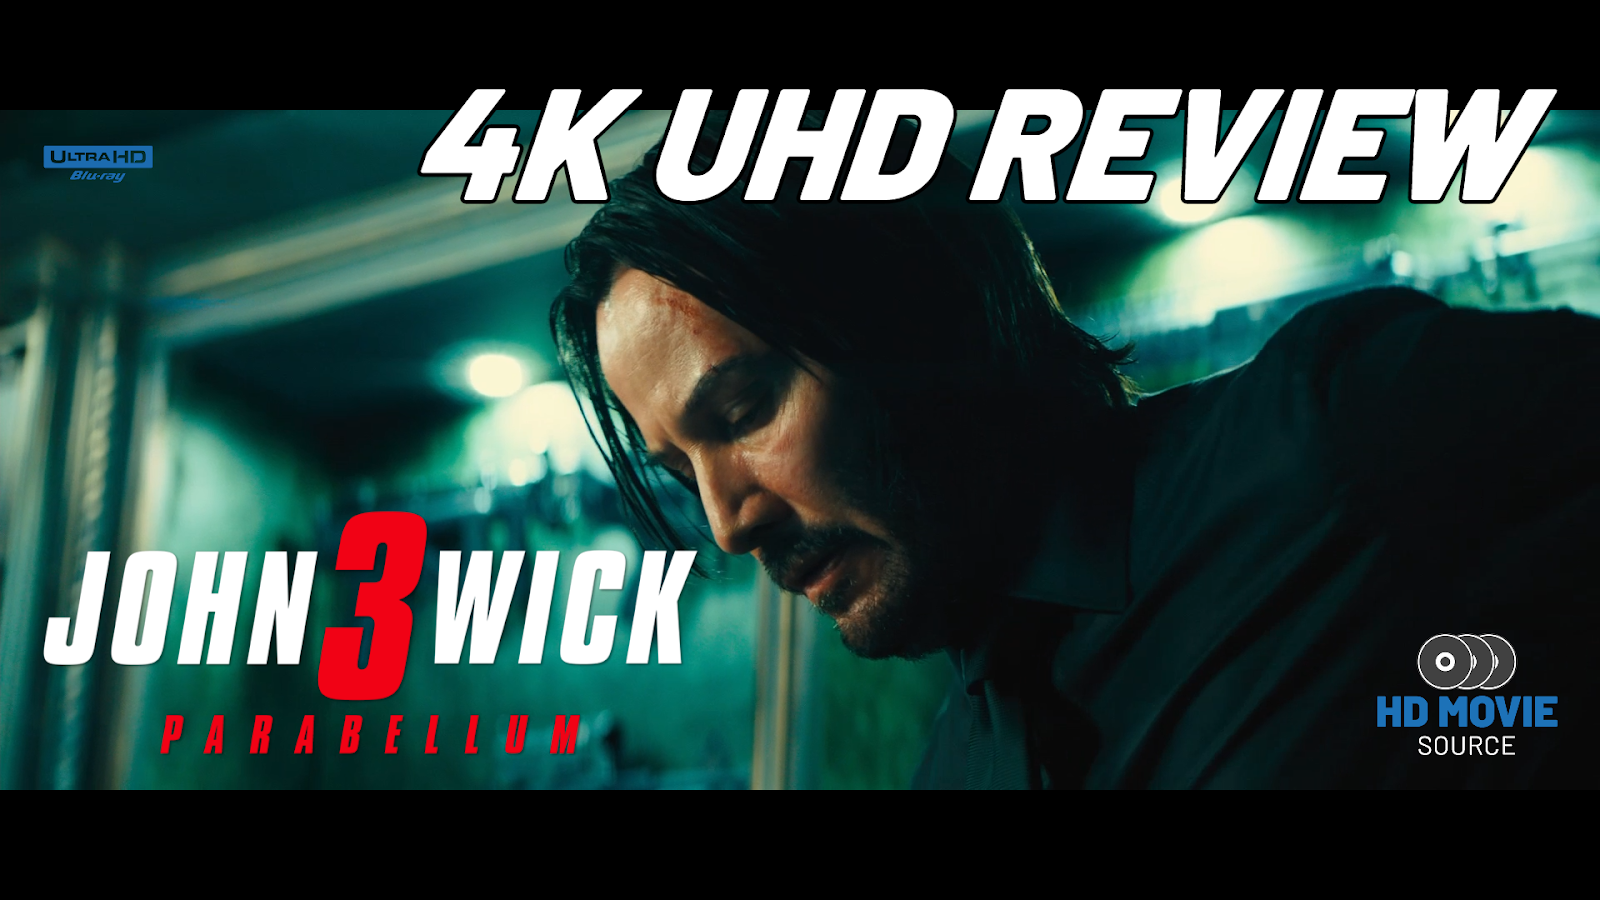 John Wick: Chapter 3 - Parabellum 4K (2019) Ultra HD Blu-ray Blu-ray Review